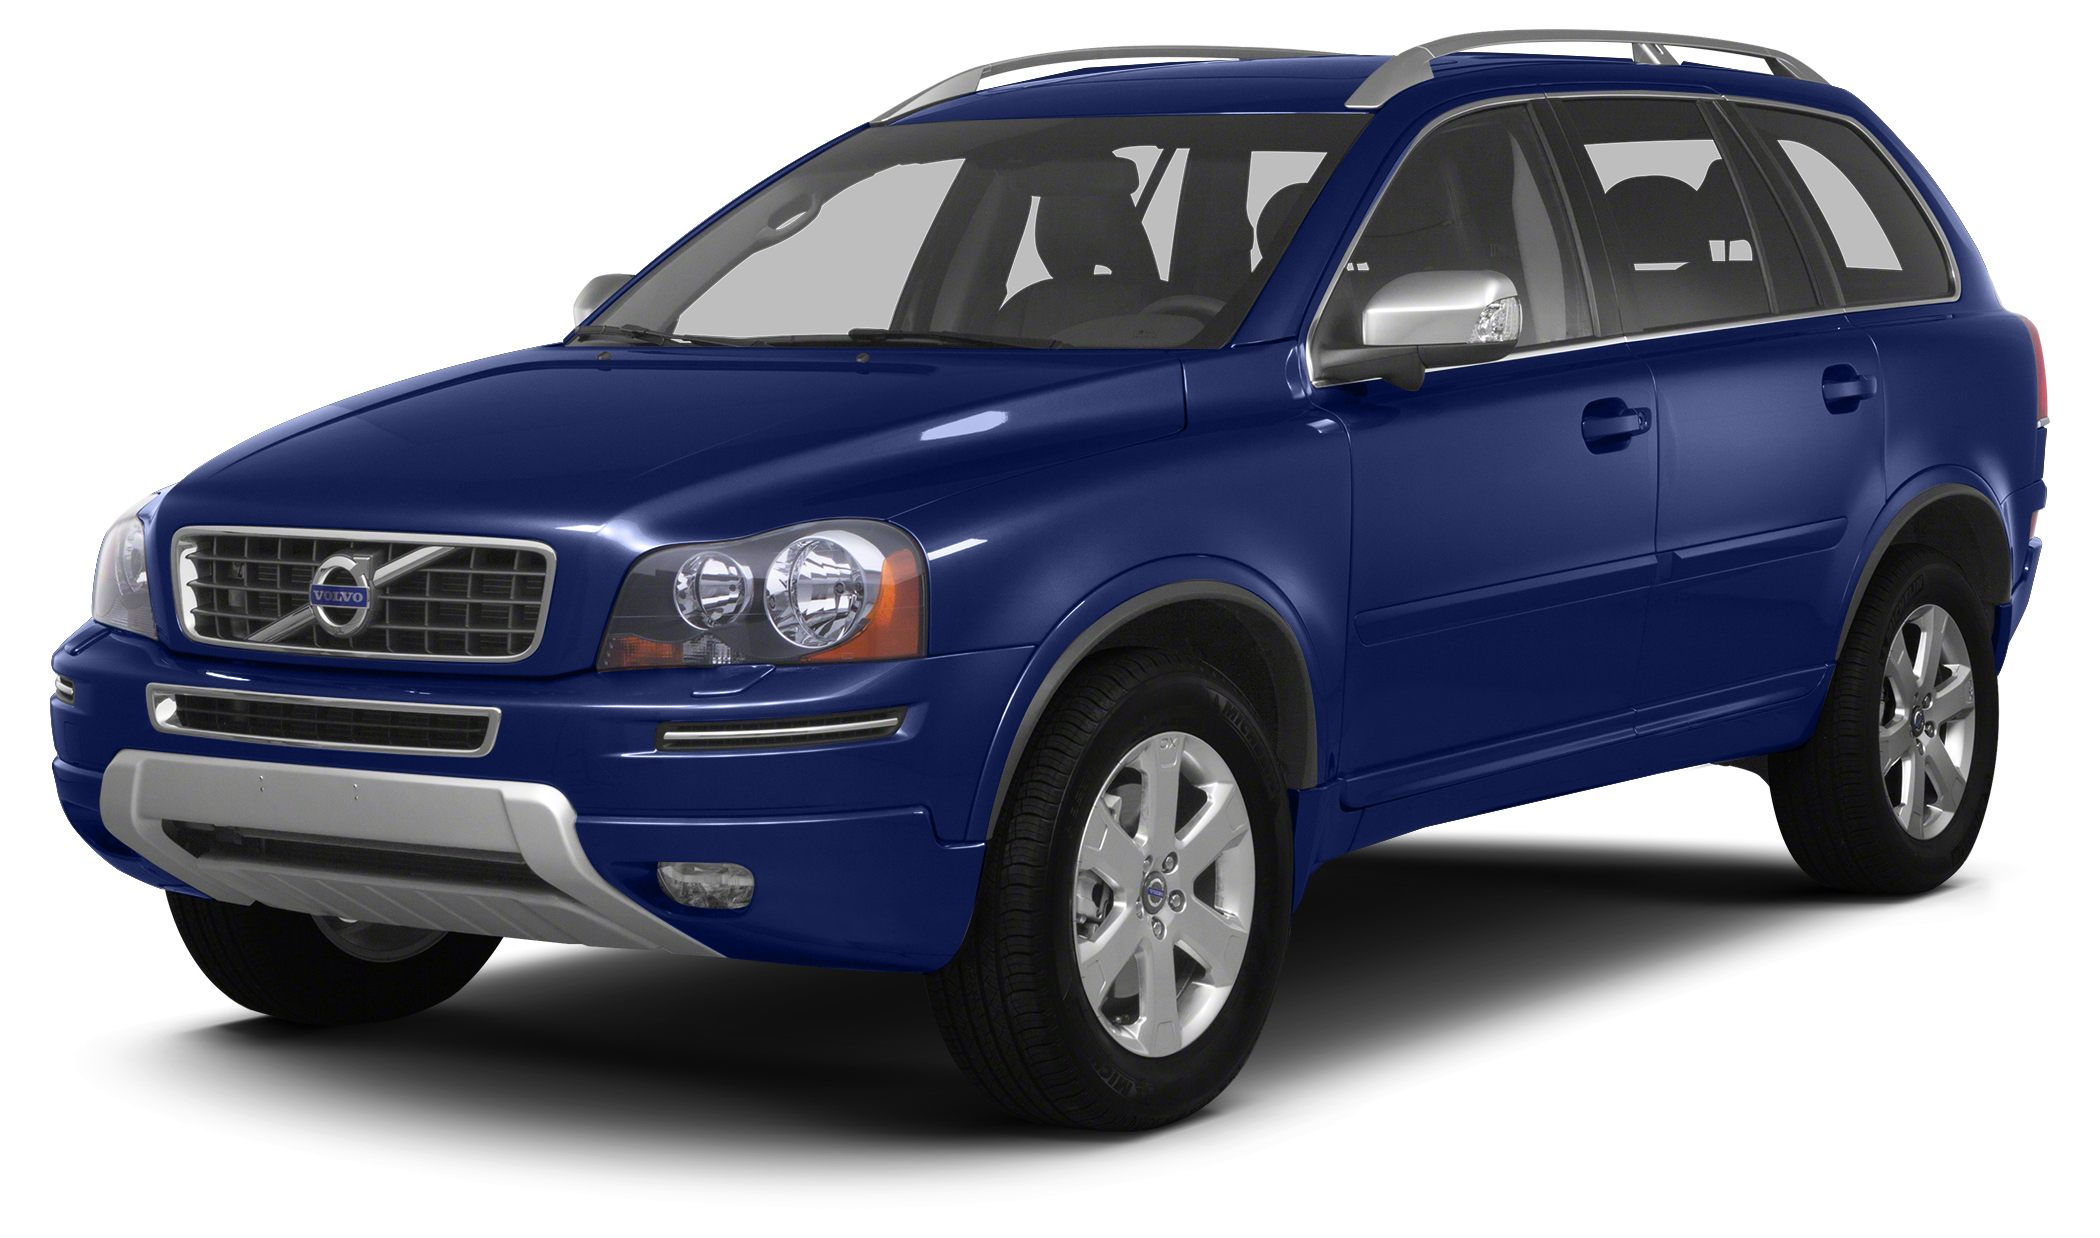 2013 Volvo XC90 32 Take command of the road in the 2013 Volvo XC90 Feature-packed and decked out